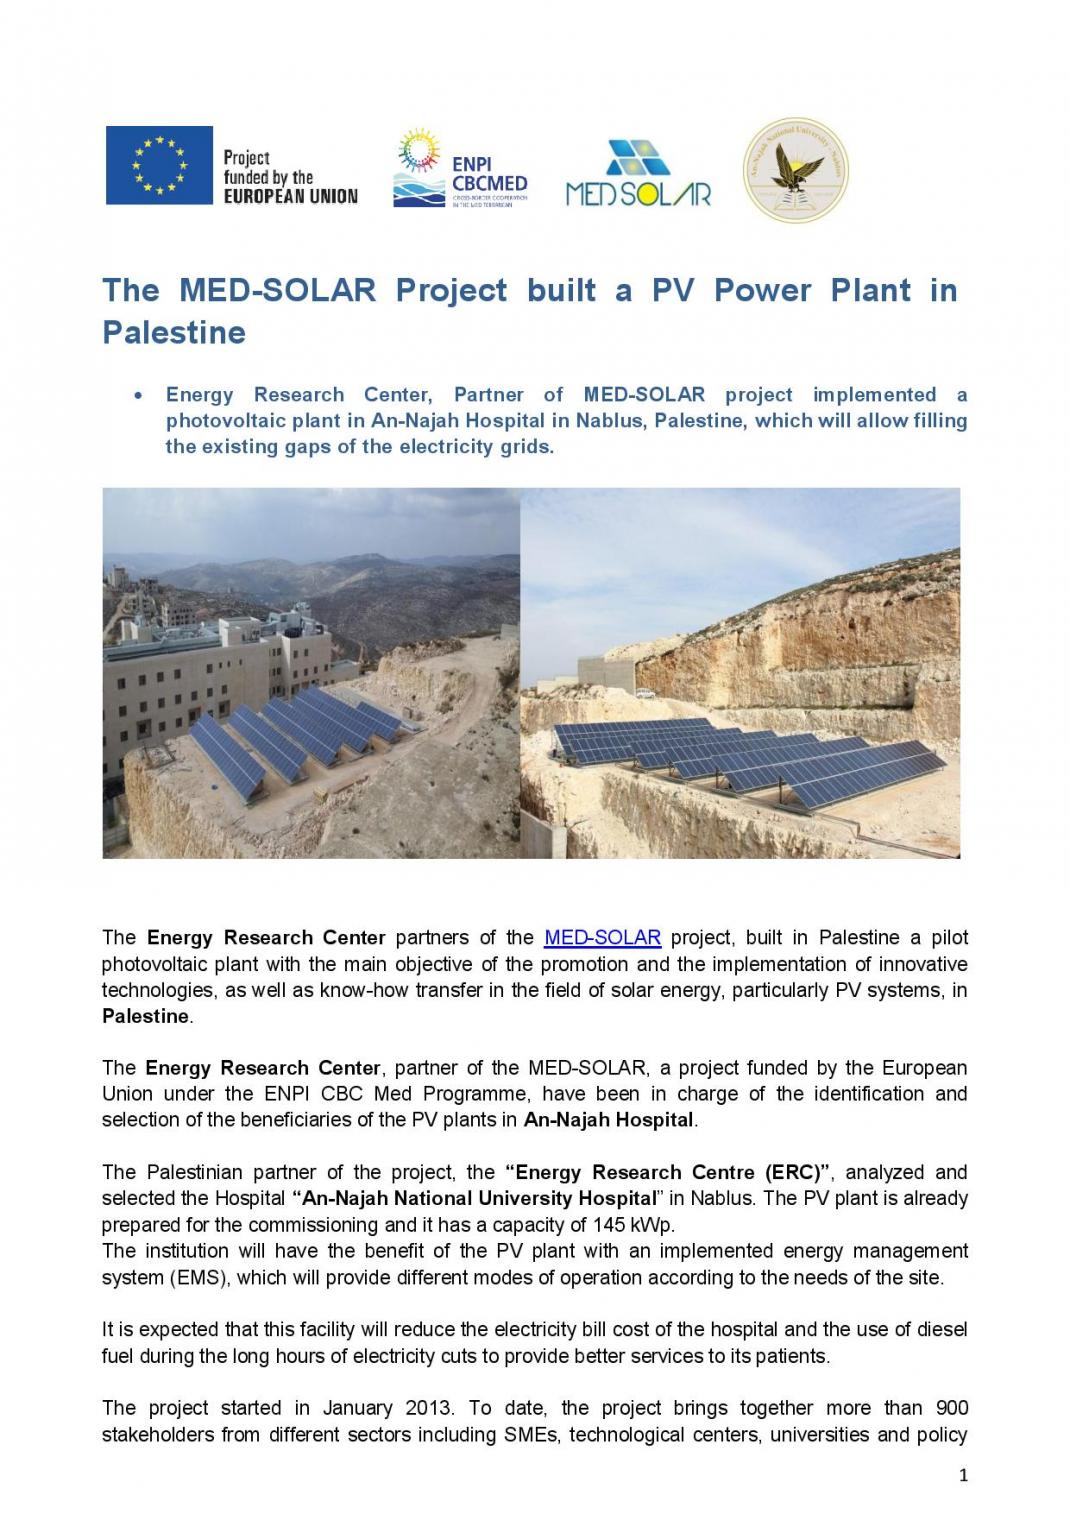 The MED-SOLAR Project built a PV Power Plant in Palestine